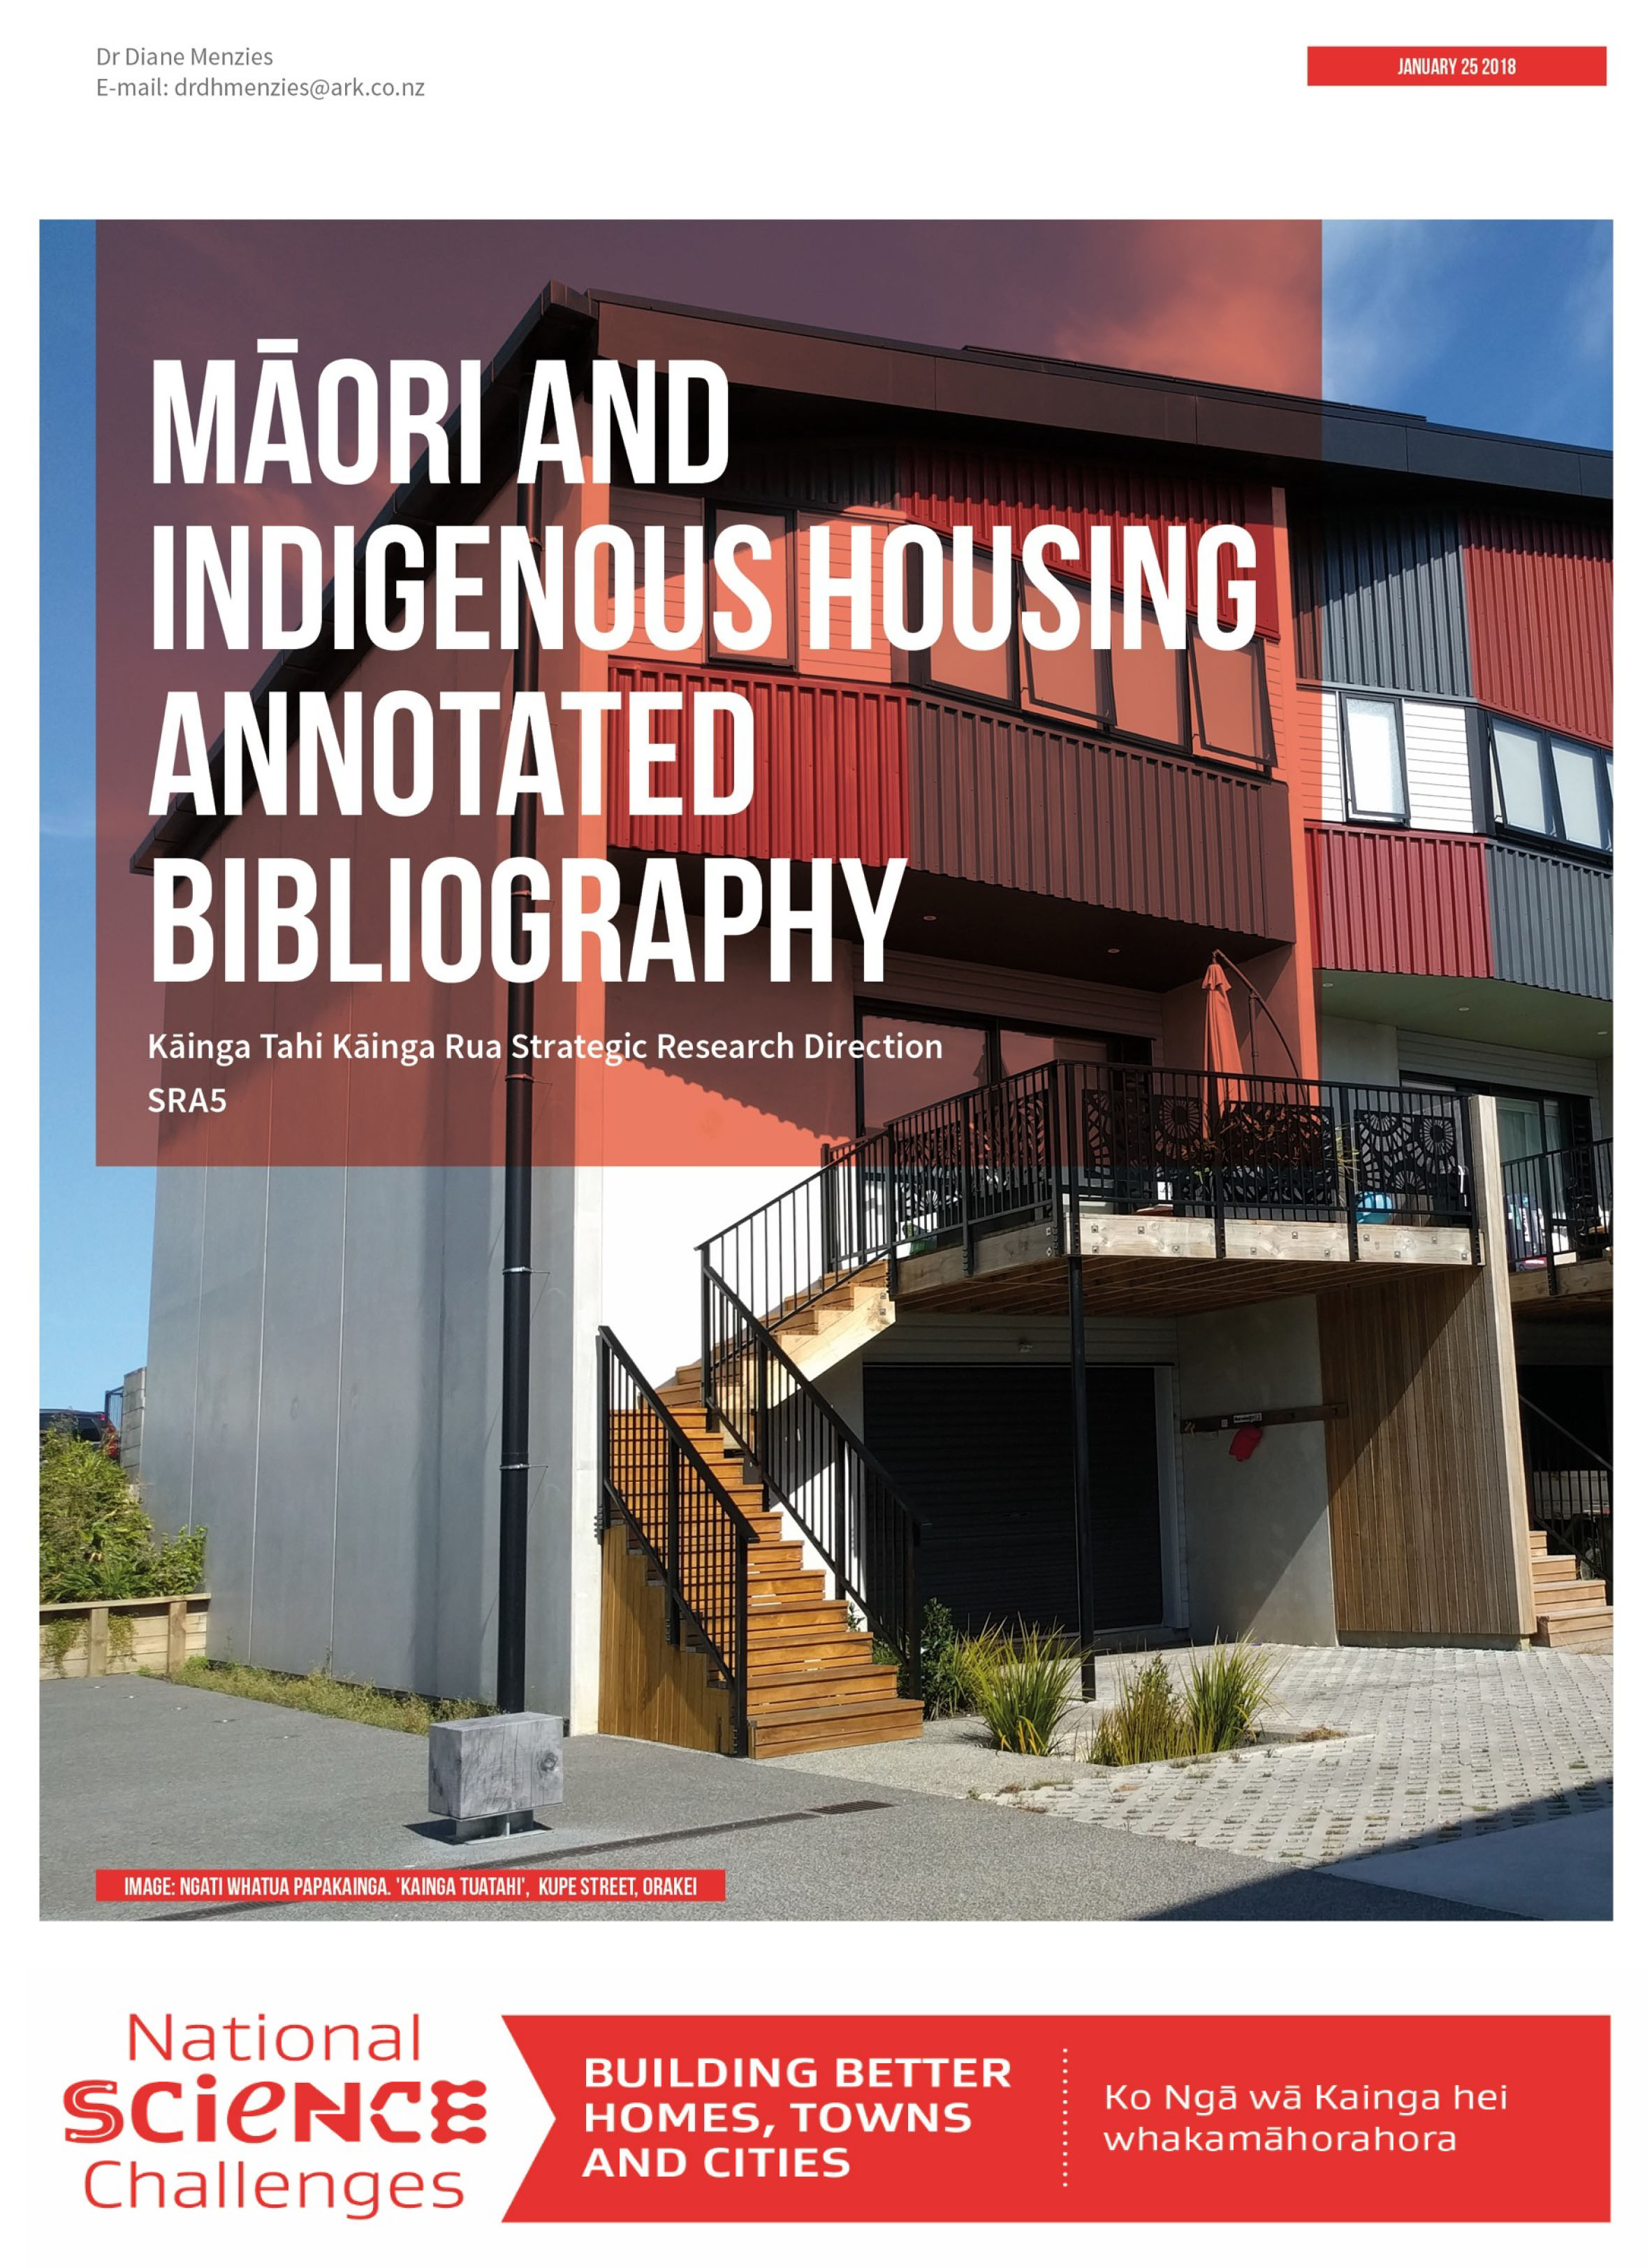 Maori_and_indigenous_housing_annotated_biblography-1.jpg